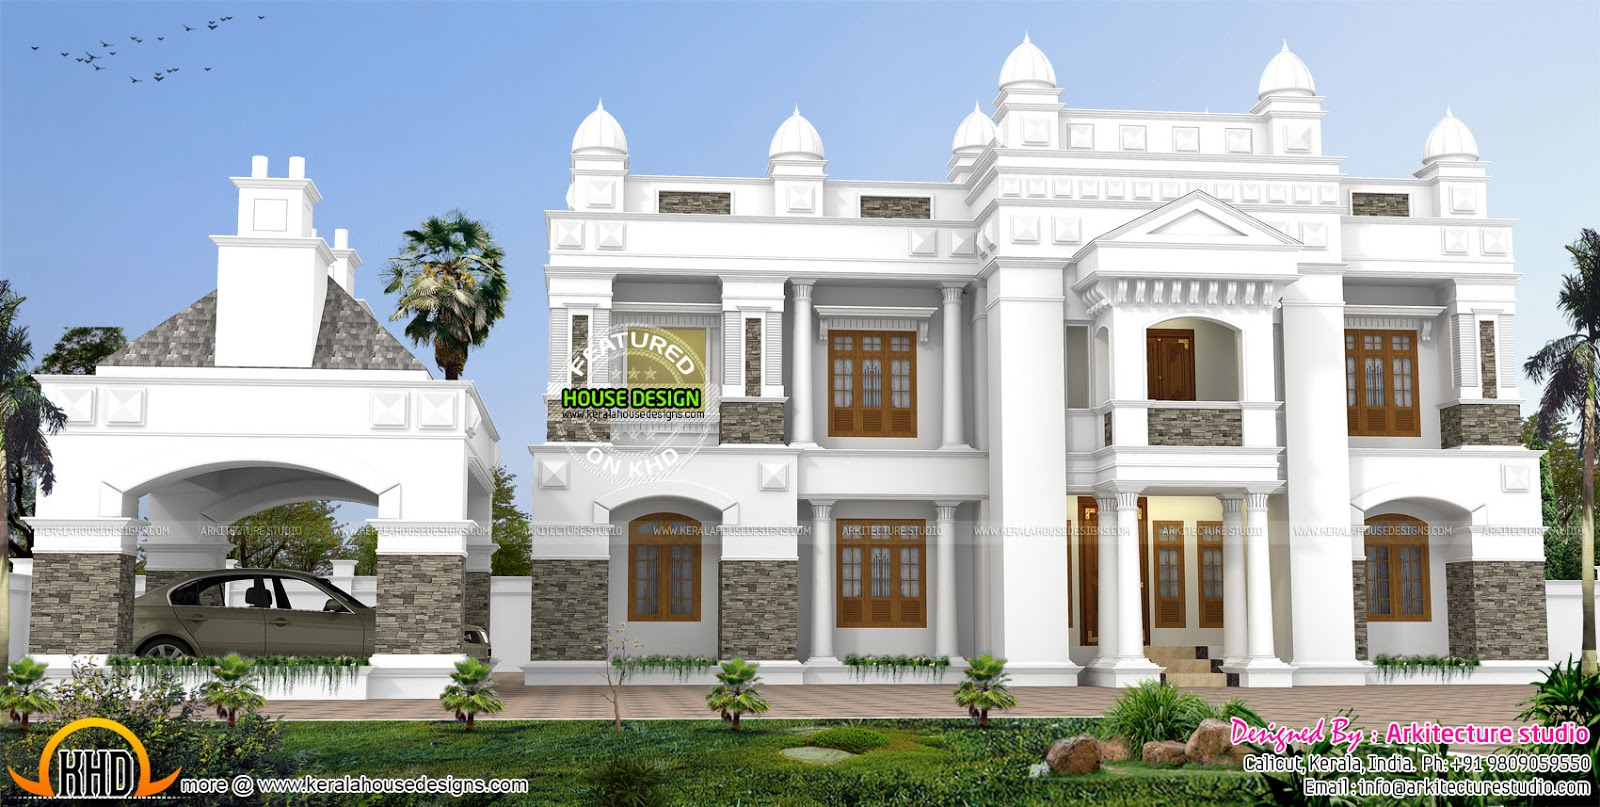 Old house remodeling plan kerala home design and floor plans for Old home designs